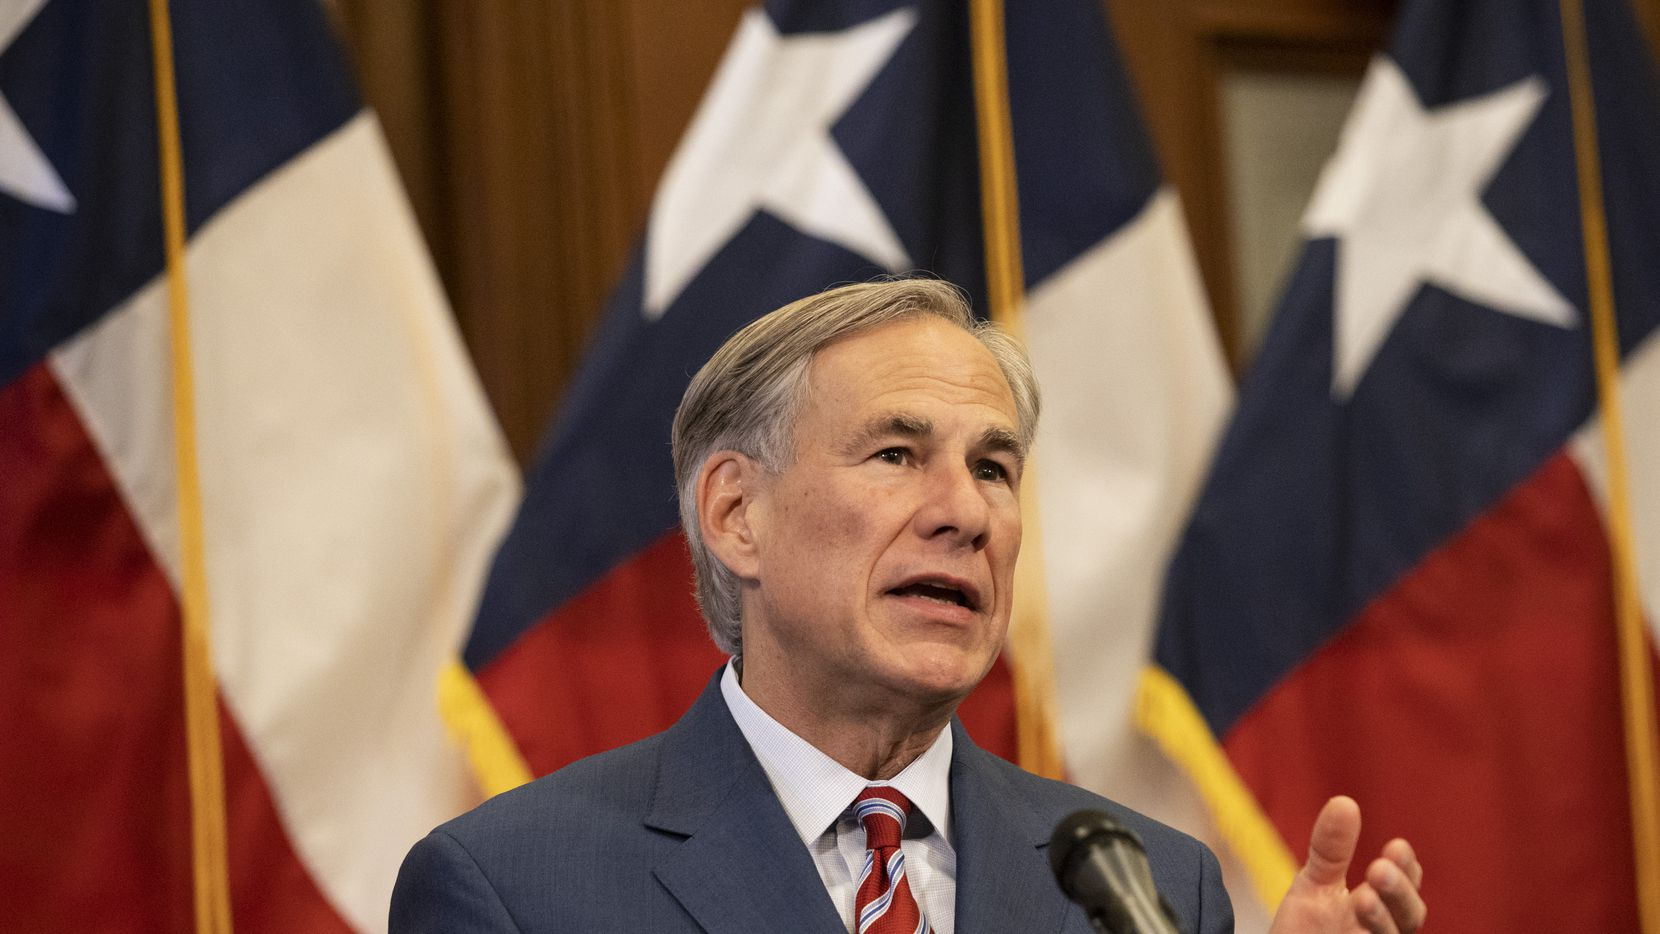 Gov. Greg Abbott announced a further reopening of more Texas businesses Wednesday, easing restrictions he imposed earlier in an effort to contain COVID-19.